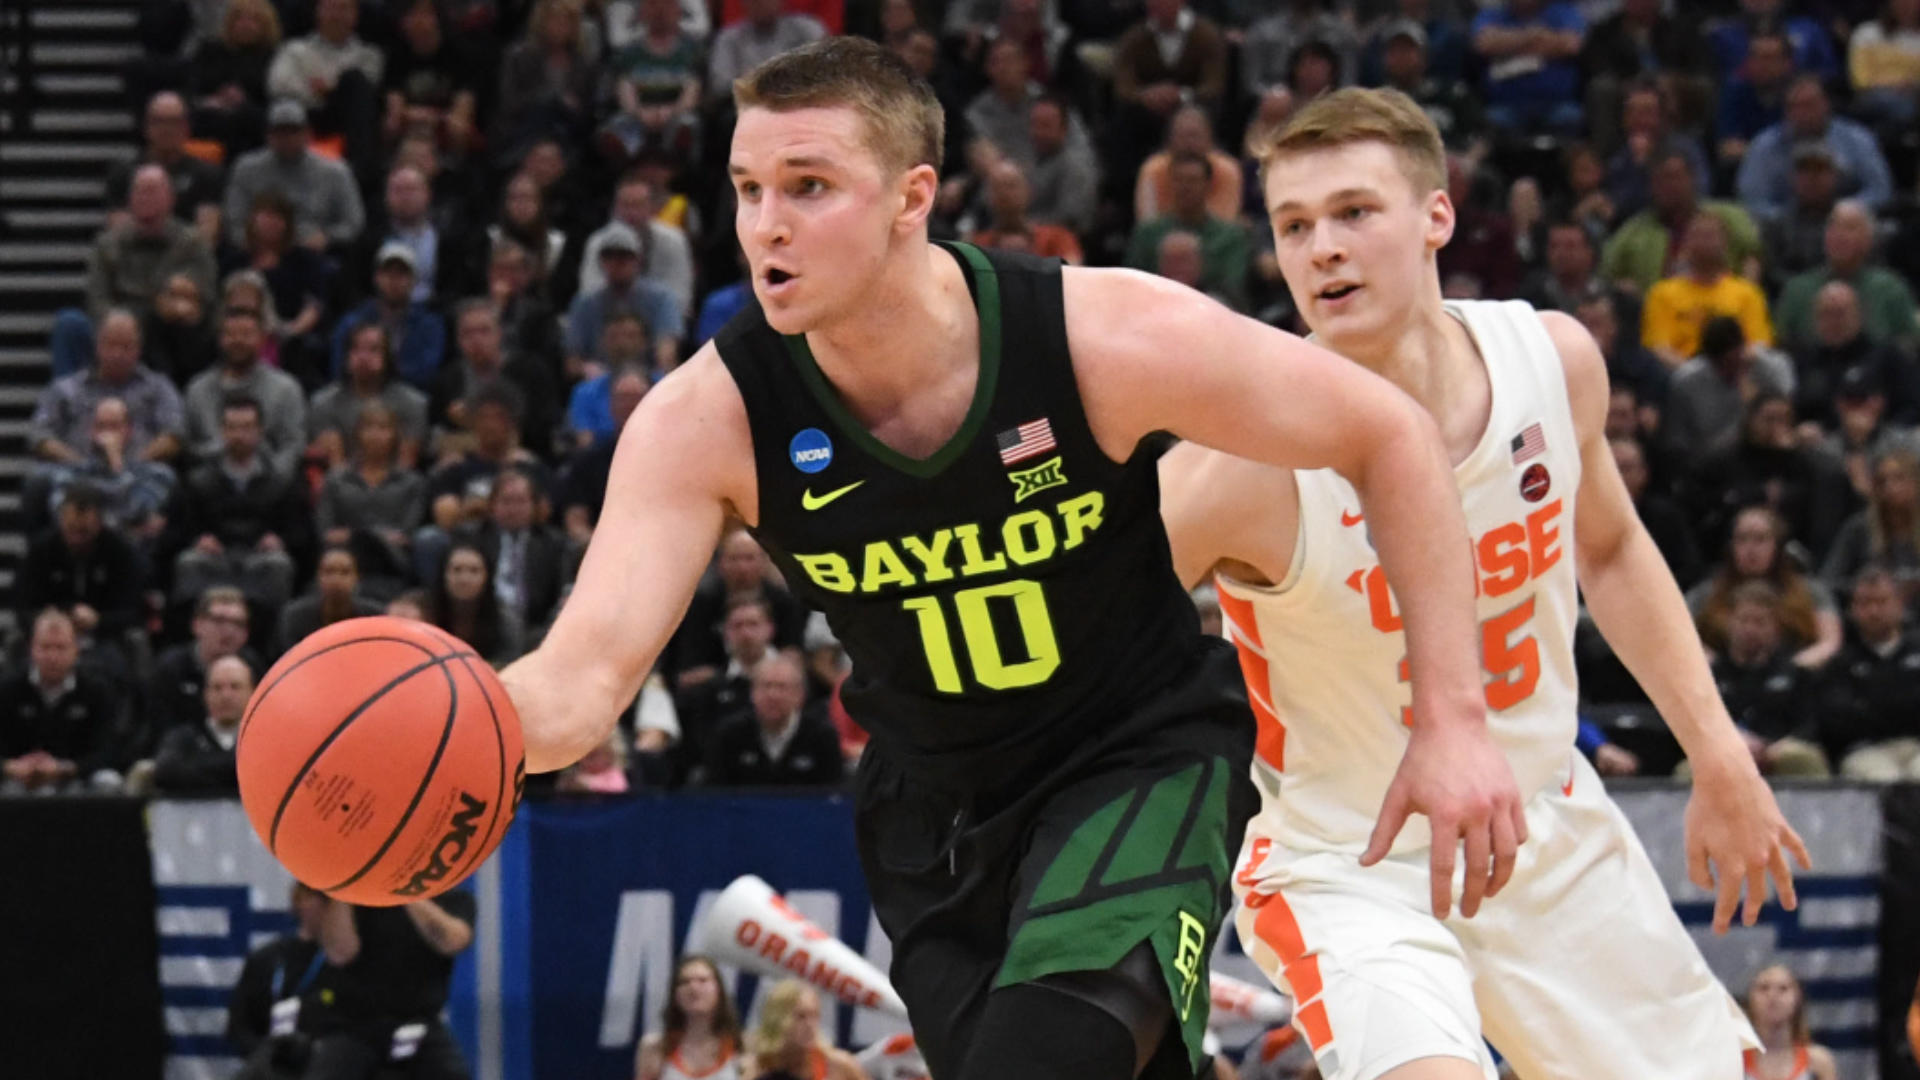 March Madness 2019: Winners and losers from the first full day of this year's NCAA Tournament